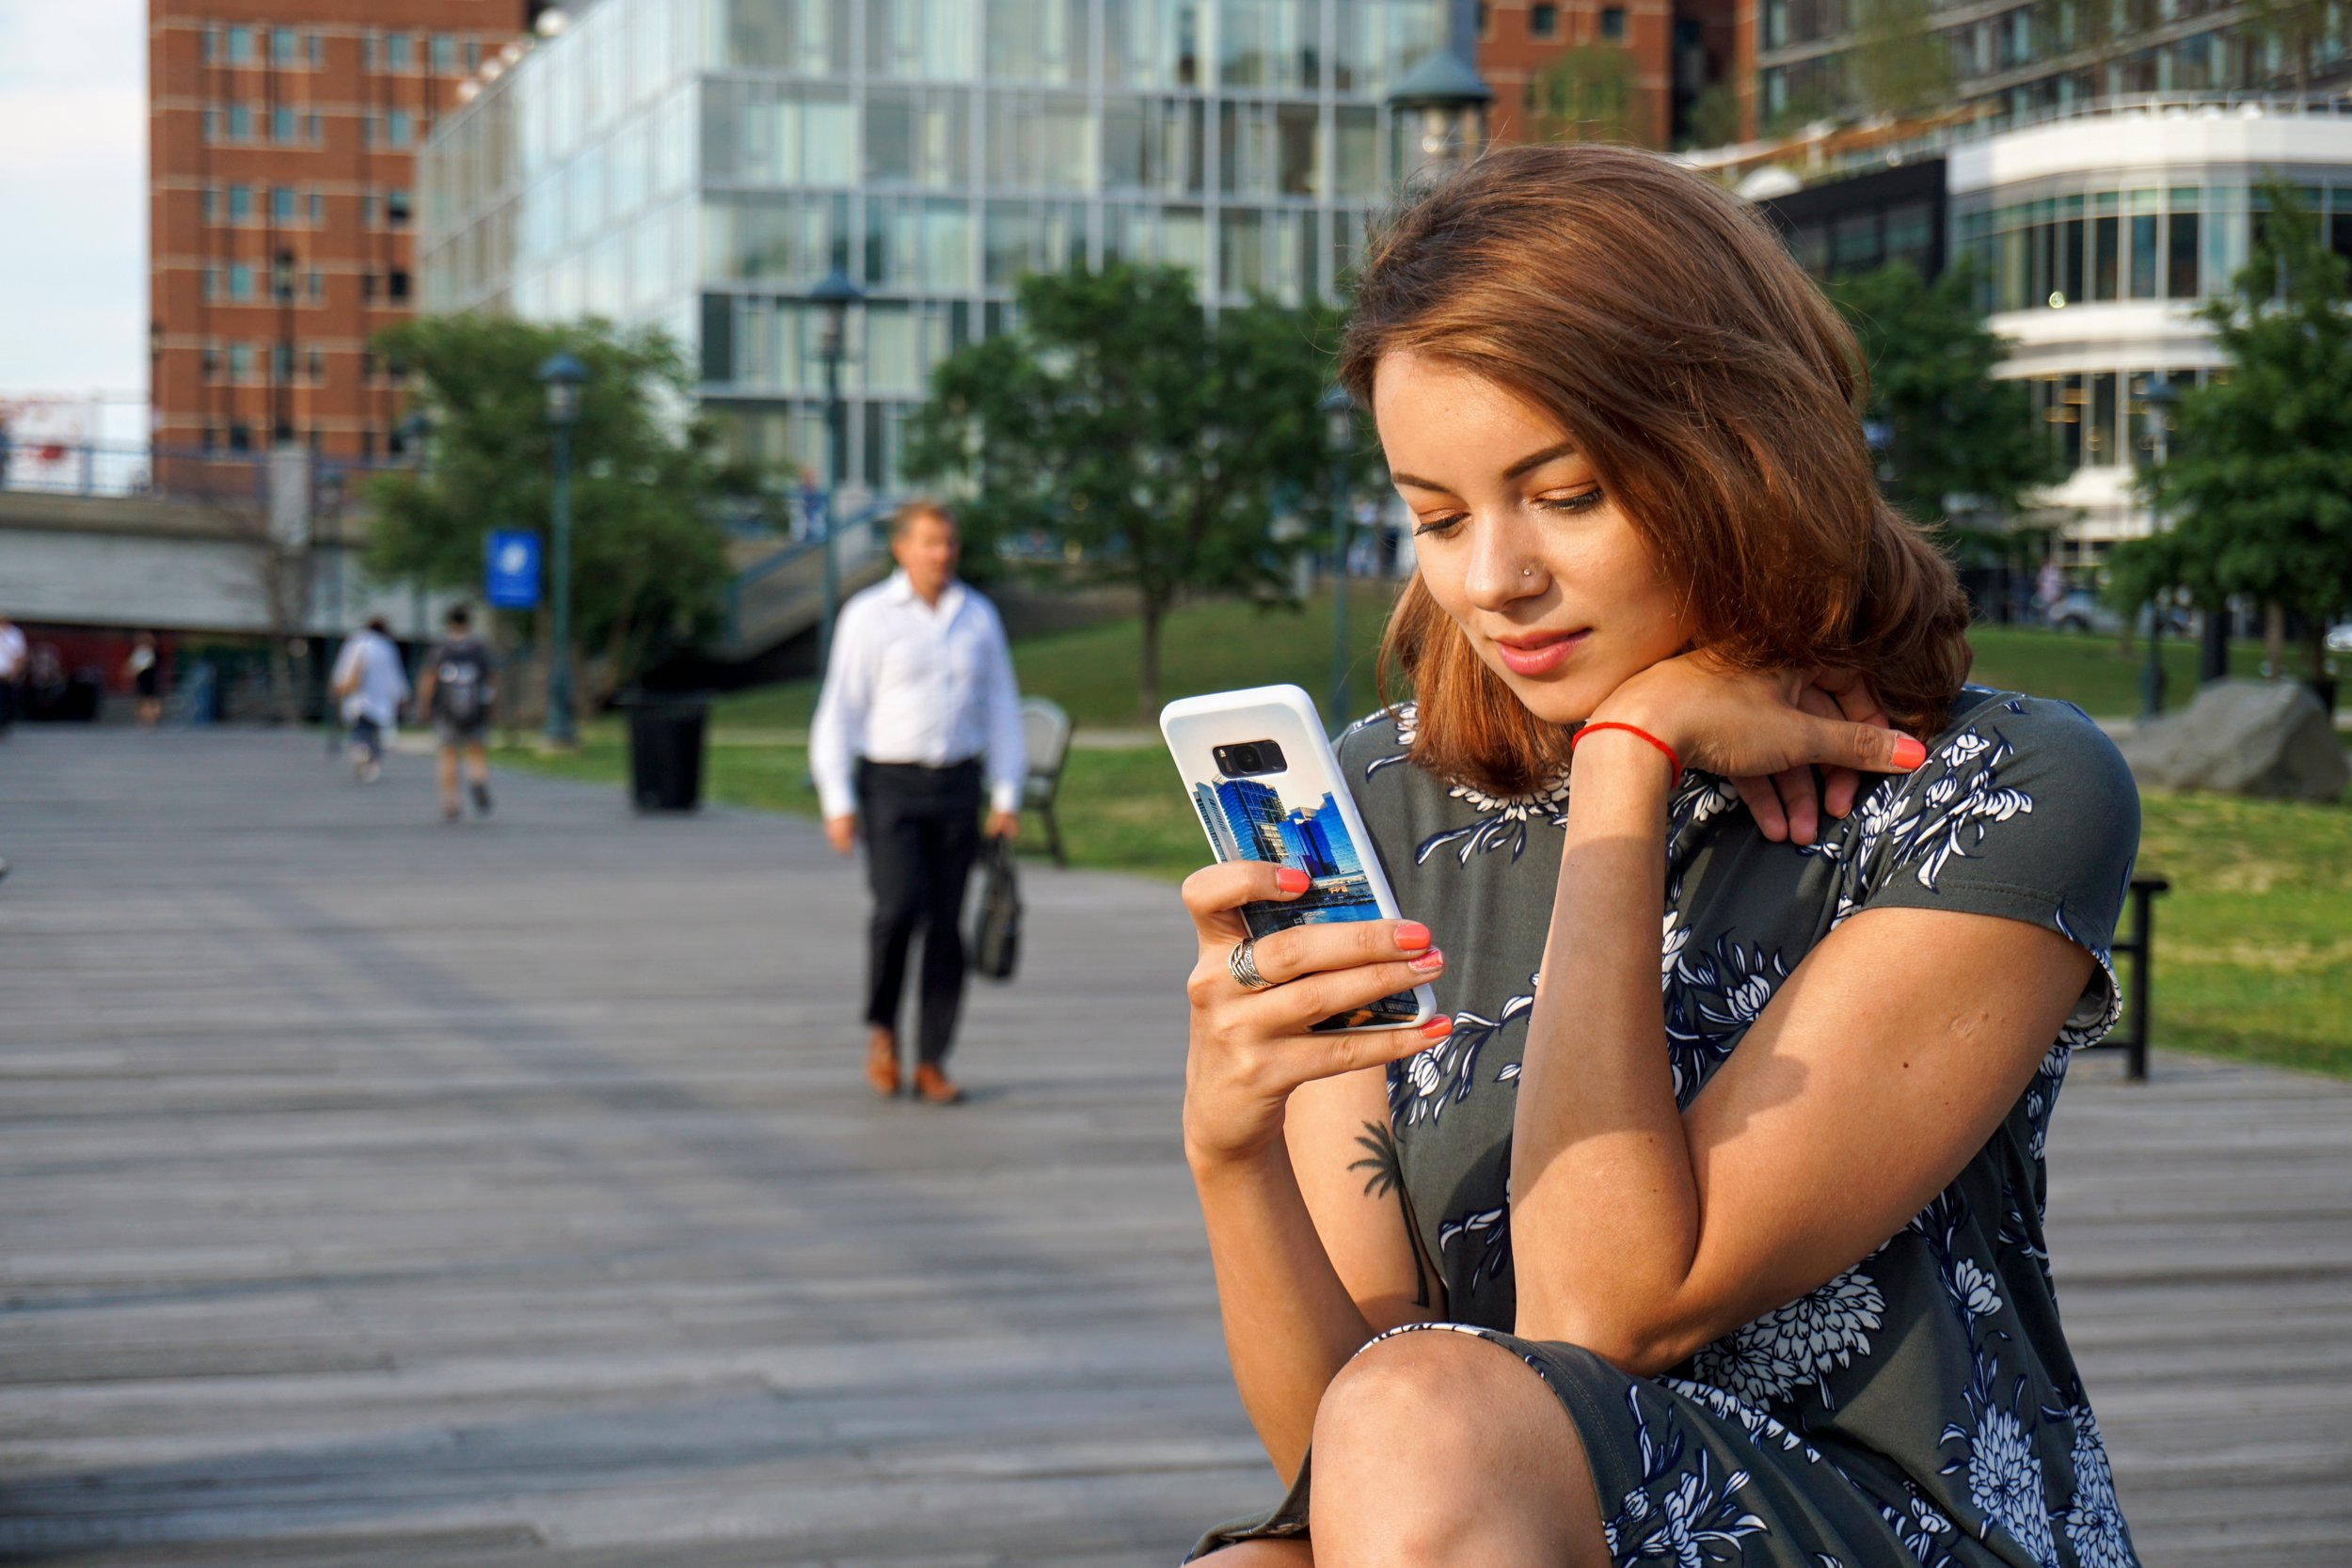 A lifestyle blogger posing and looking at her phone in Boston.